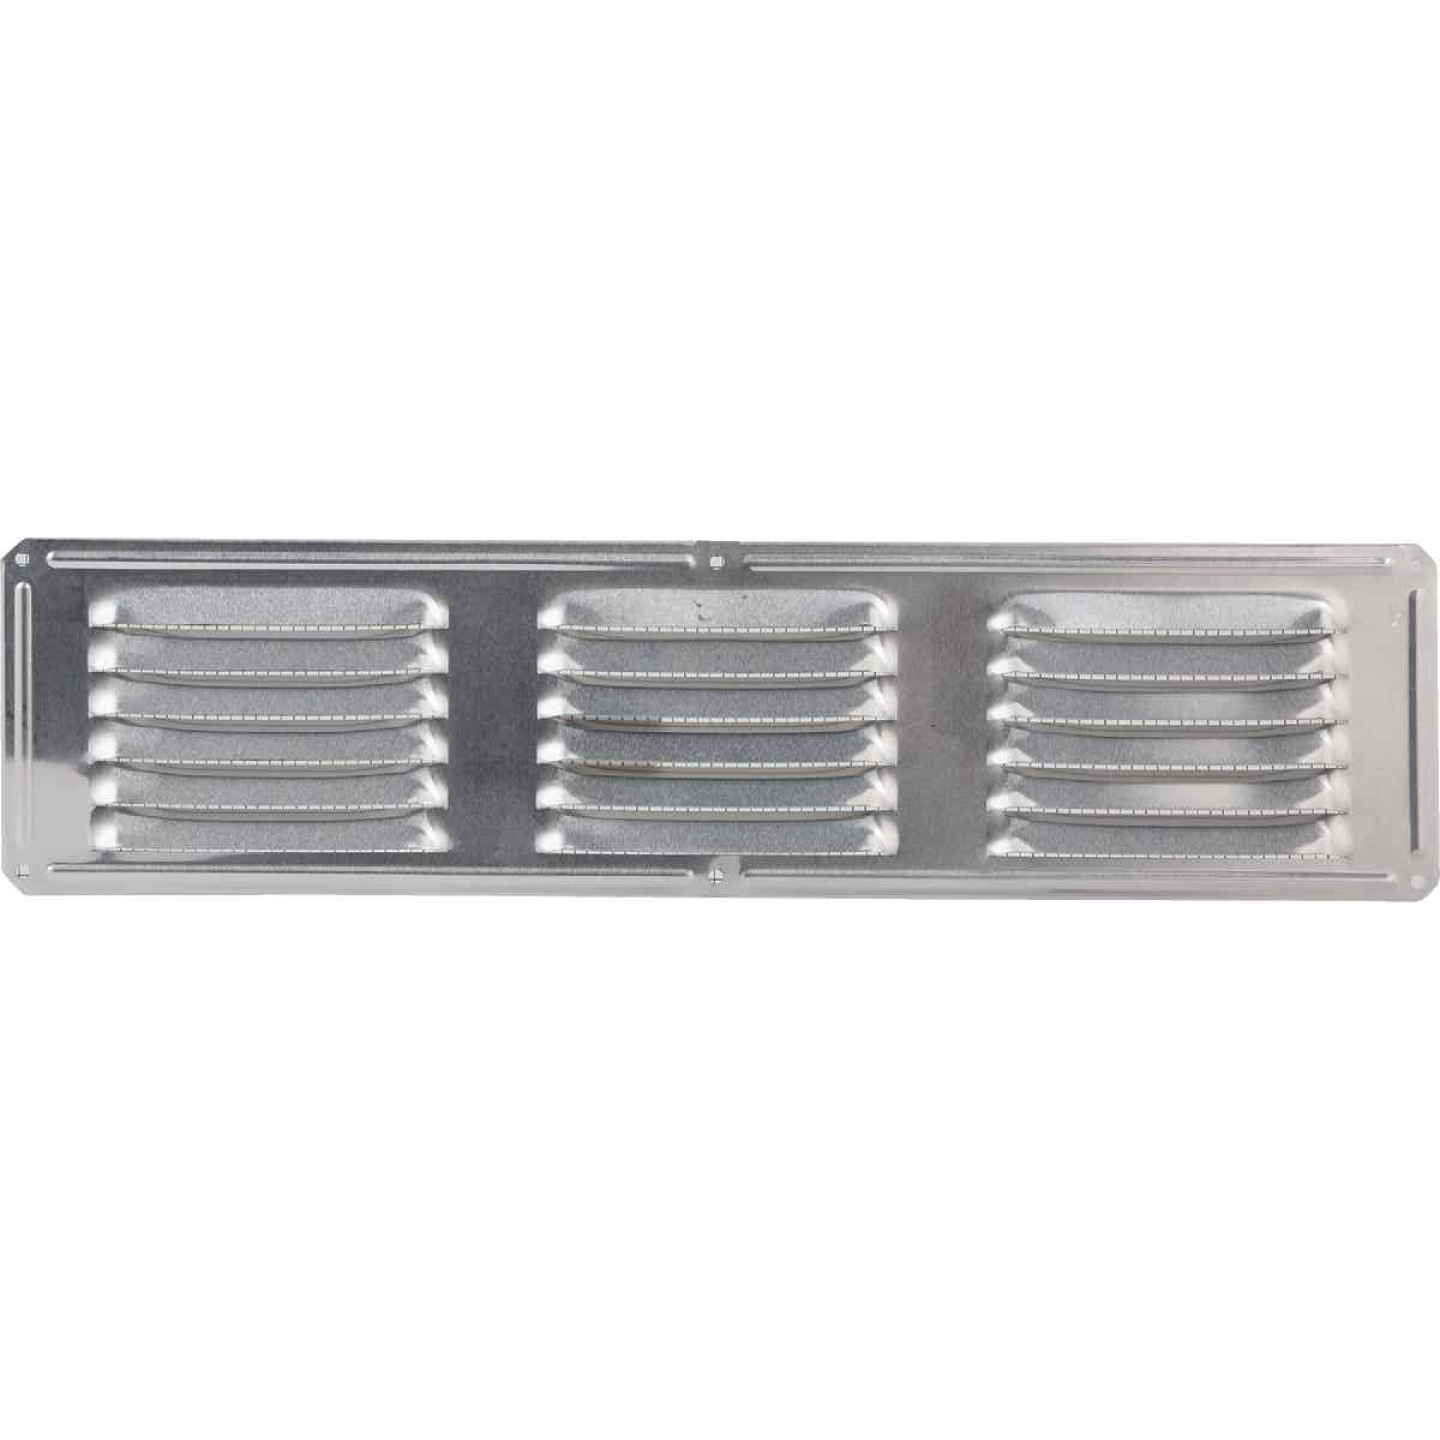 Air Vent 16 In. x 4 In. Mill Aluminum Under Eave Vent Image 2